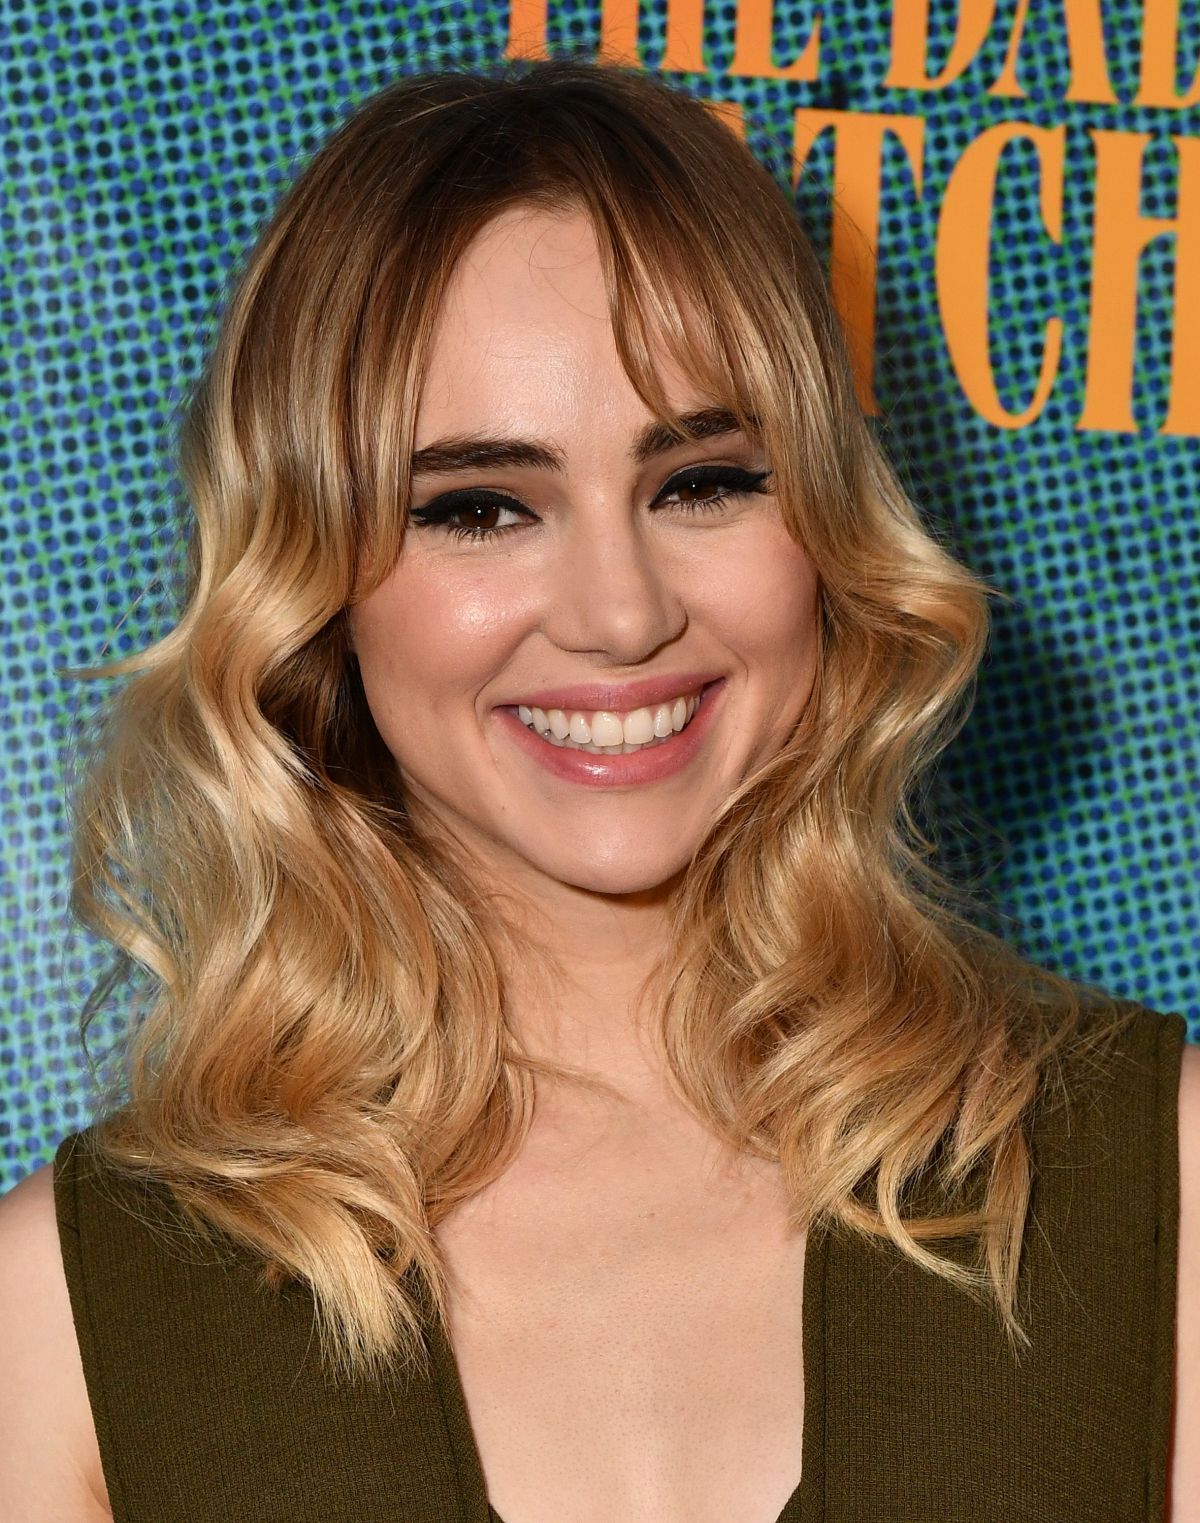 SUKI WATERHOUSE at The Bad Batch Premiere in Los Angeles 06/19/2017